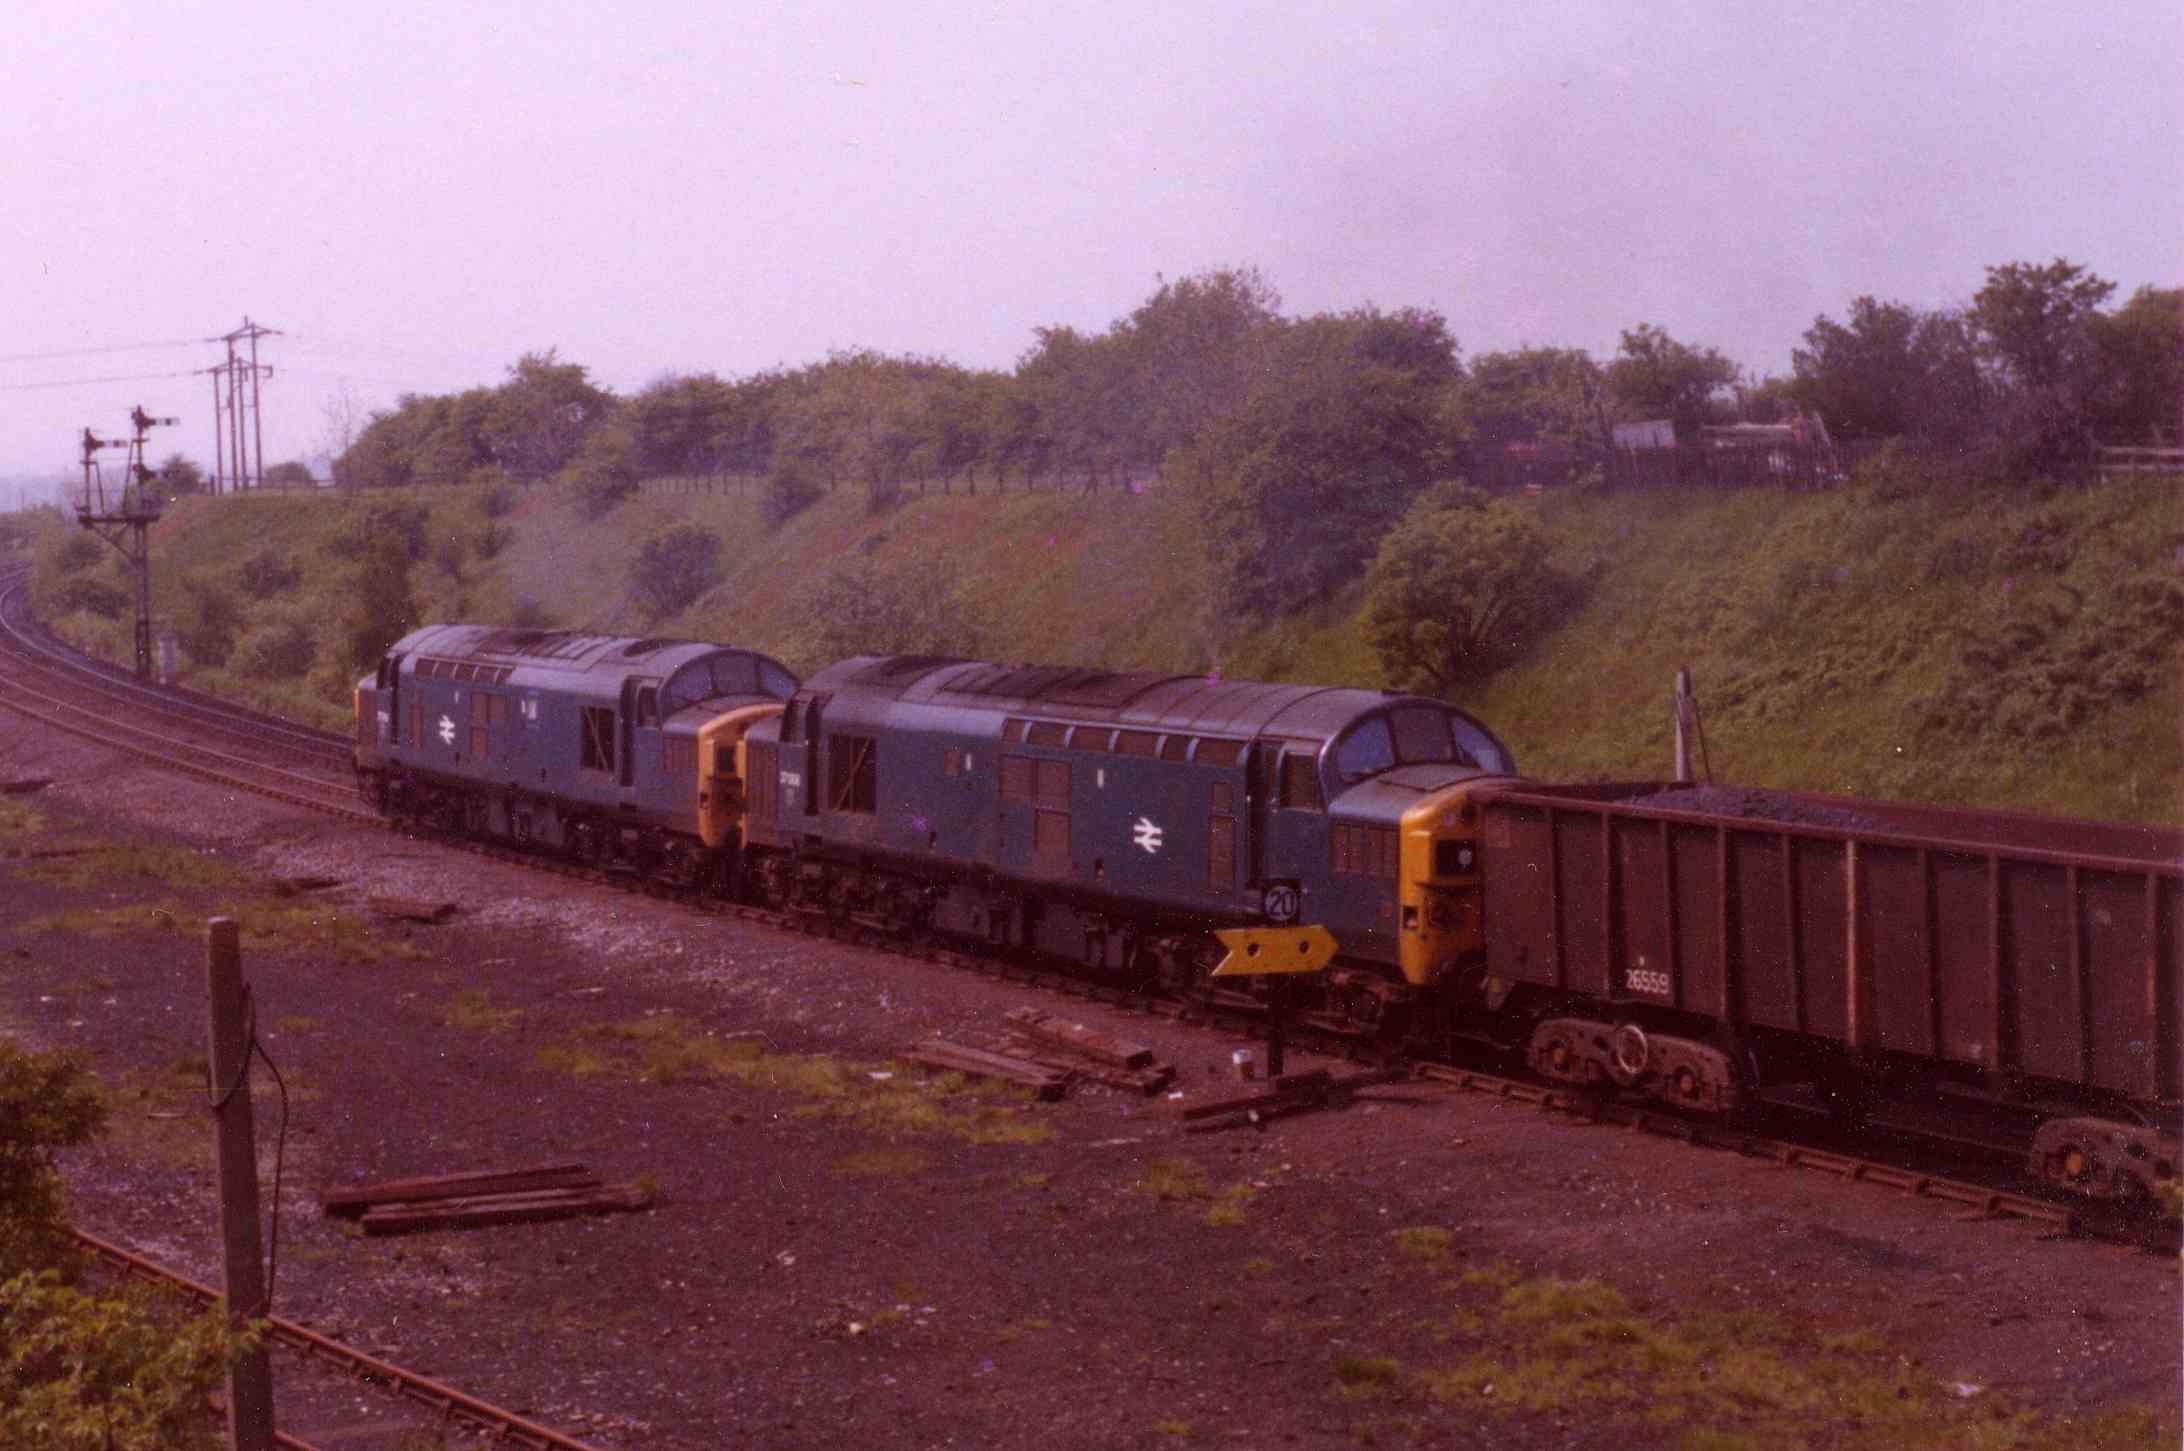 37006_and_37008_start_the_long_climb_to_Consett_June79